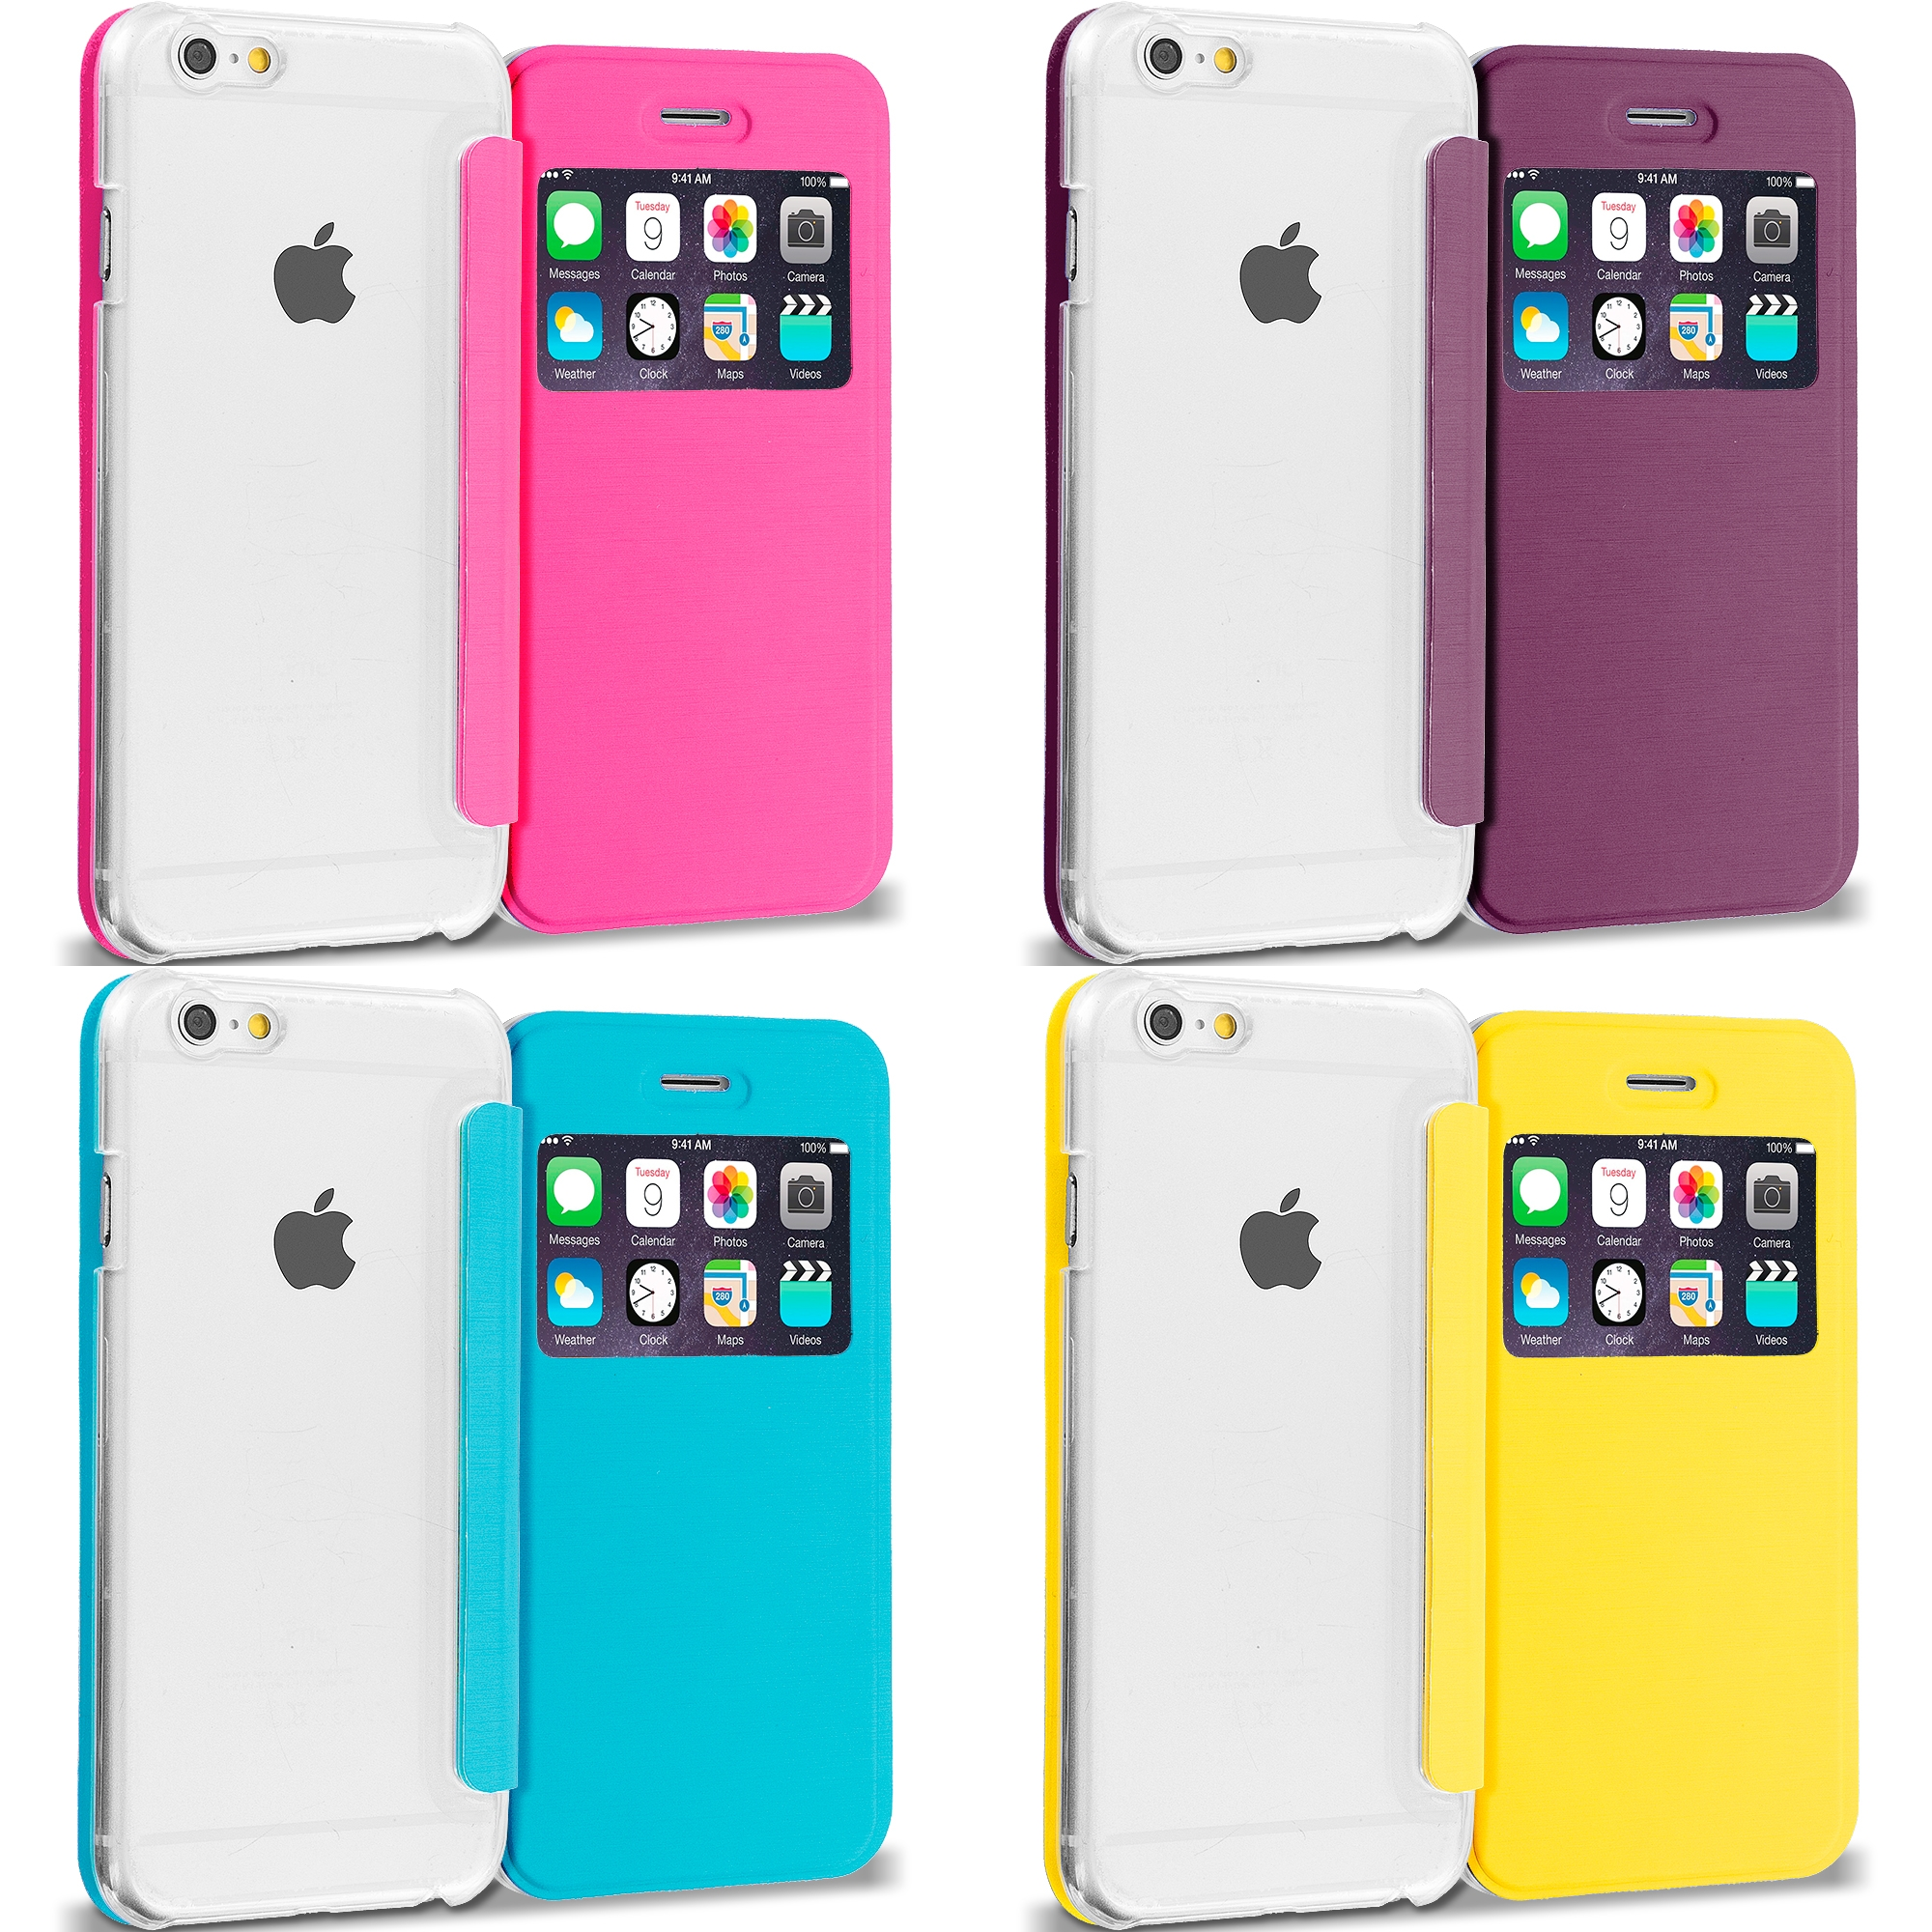 Apple iPhone 6 6S (4.7) 4 in 1 Combo Bundle Pack - Slim Hard Wallet Flip Case Cover Clear Back With Window